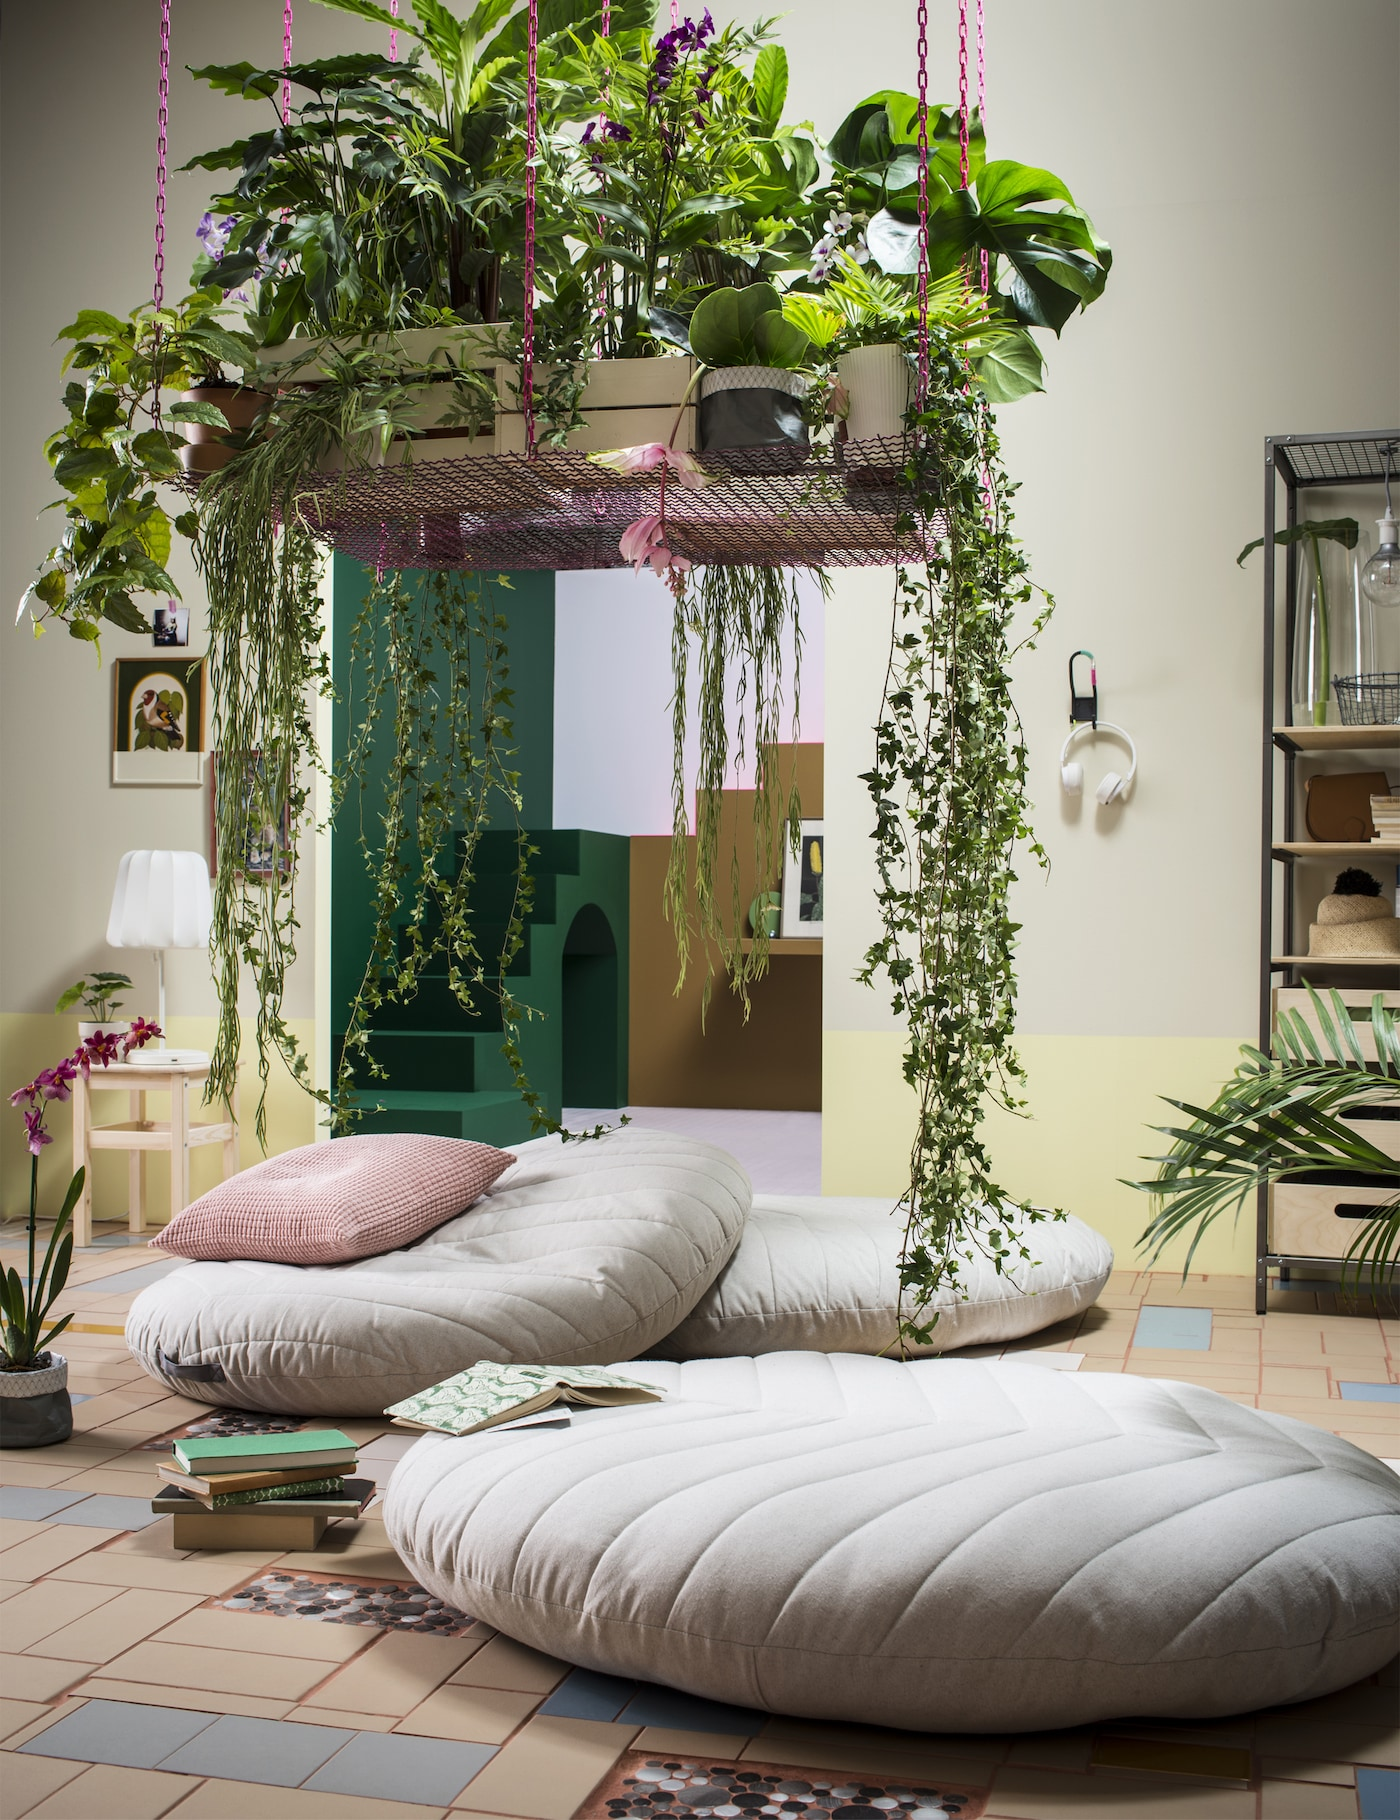 A living room with three large floor cushions in beige cover, above the cushions a hanging shelf with various green plants.